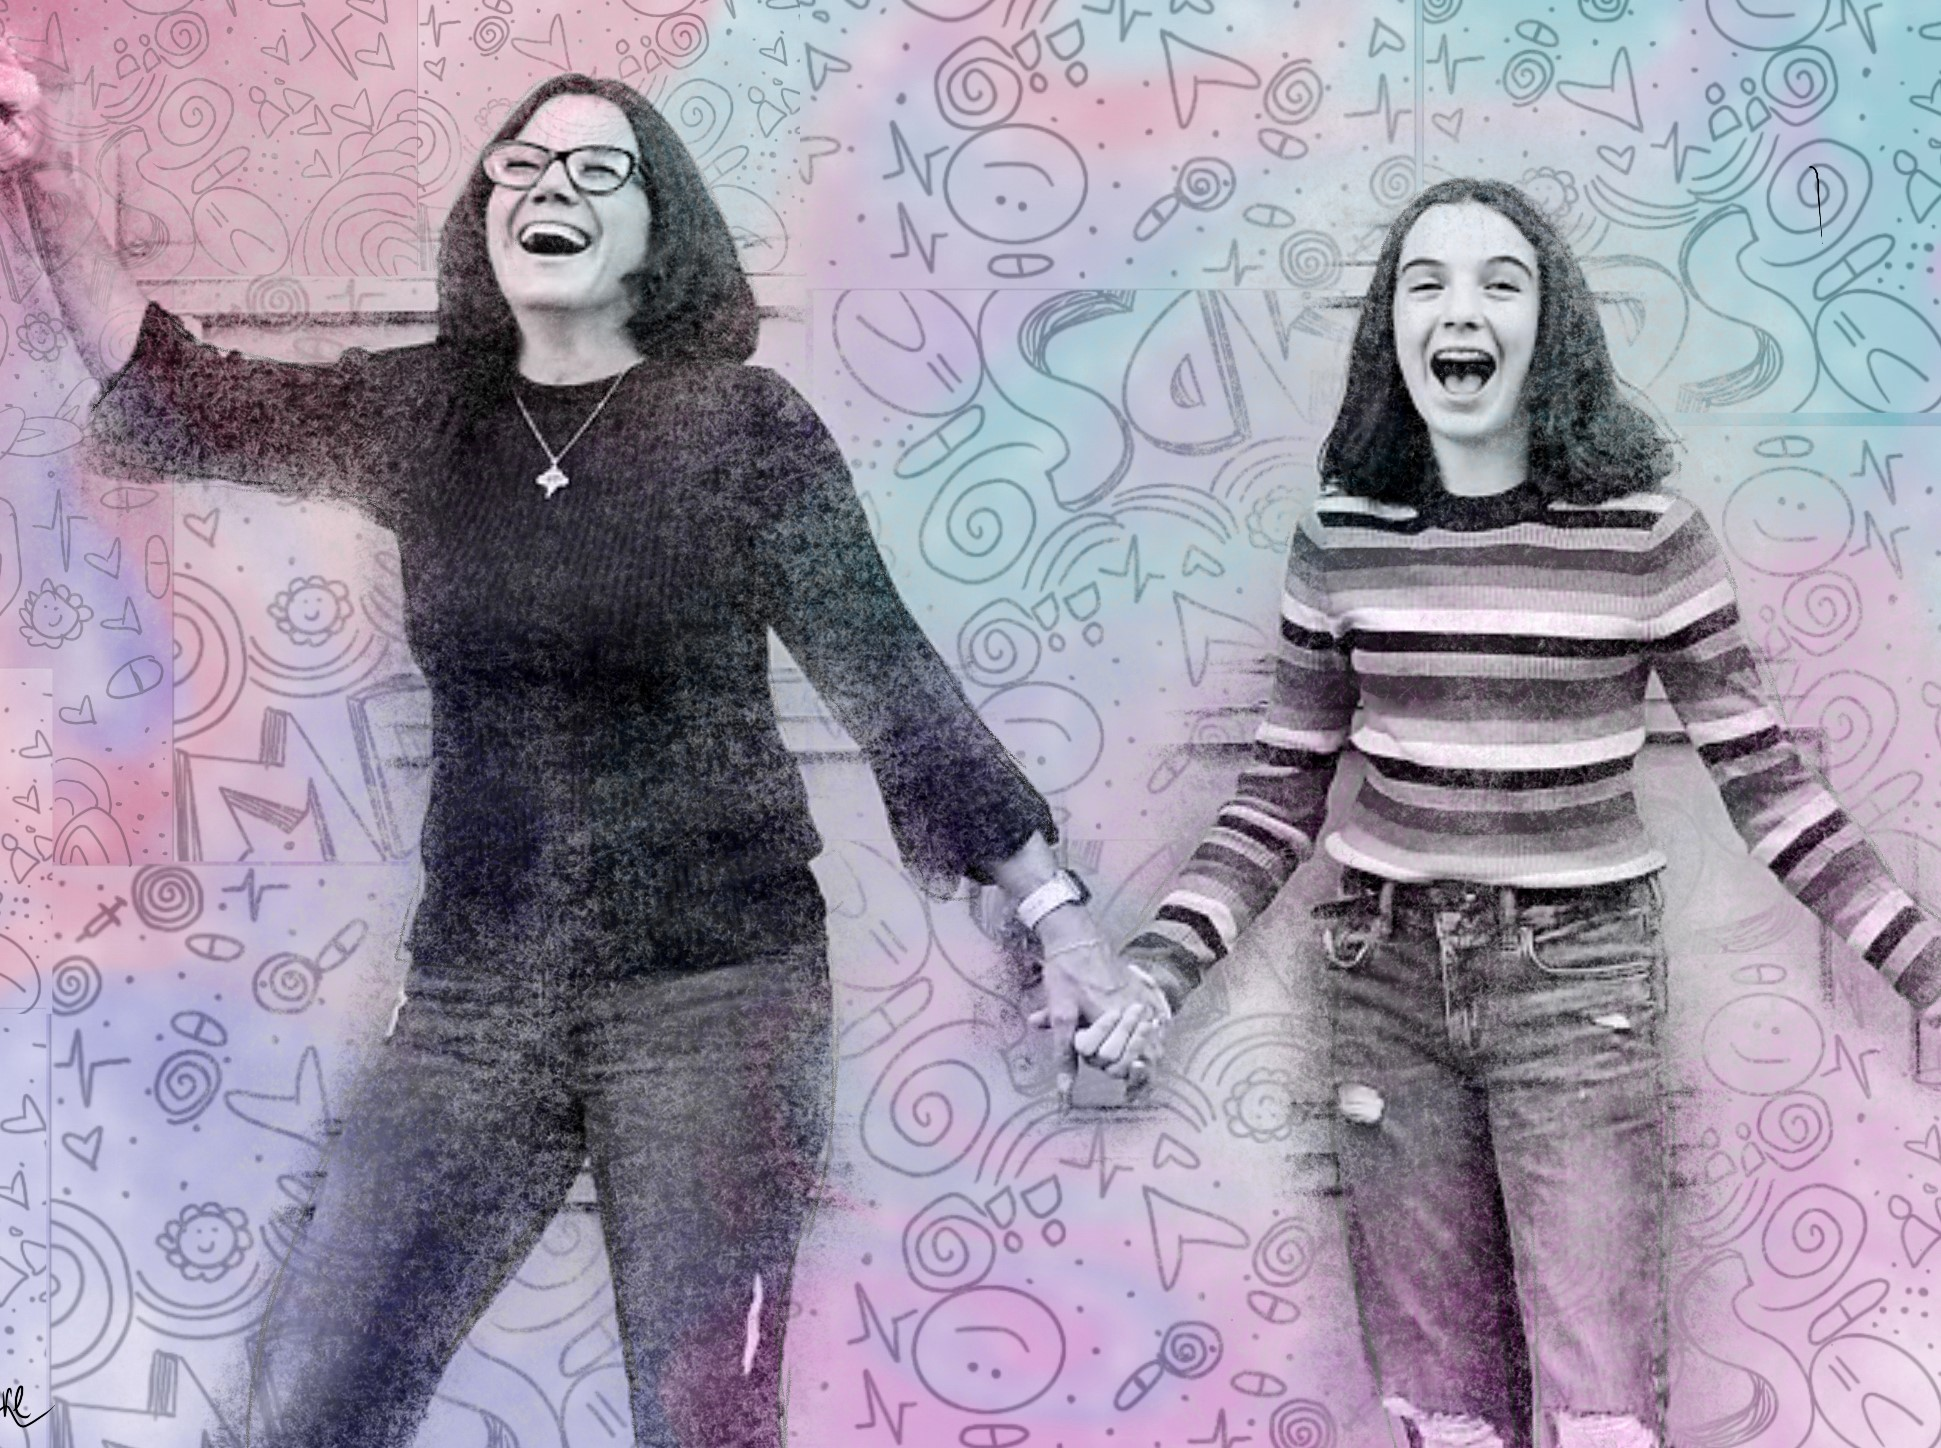 JULIA MCGUIRE, LOVE AND JOY: MOTHER AND DAUGHTER: This is my daughter and me finding joy in life — she is my heart and soul, and why I fight this disease. This is a photograph filtered with photo editing software.